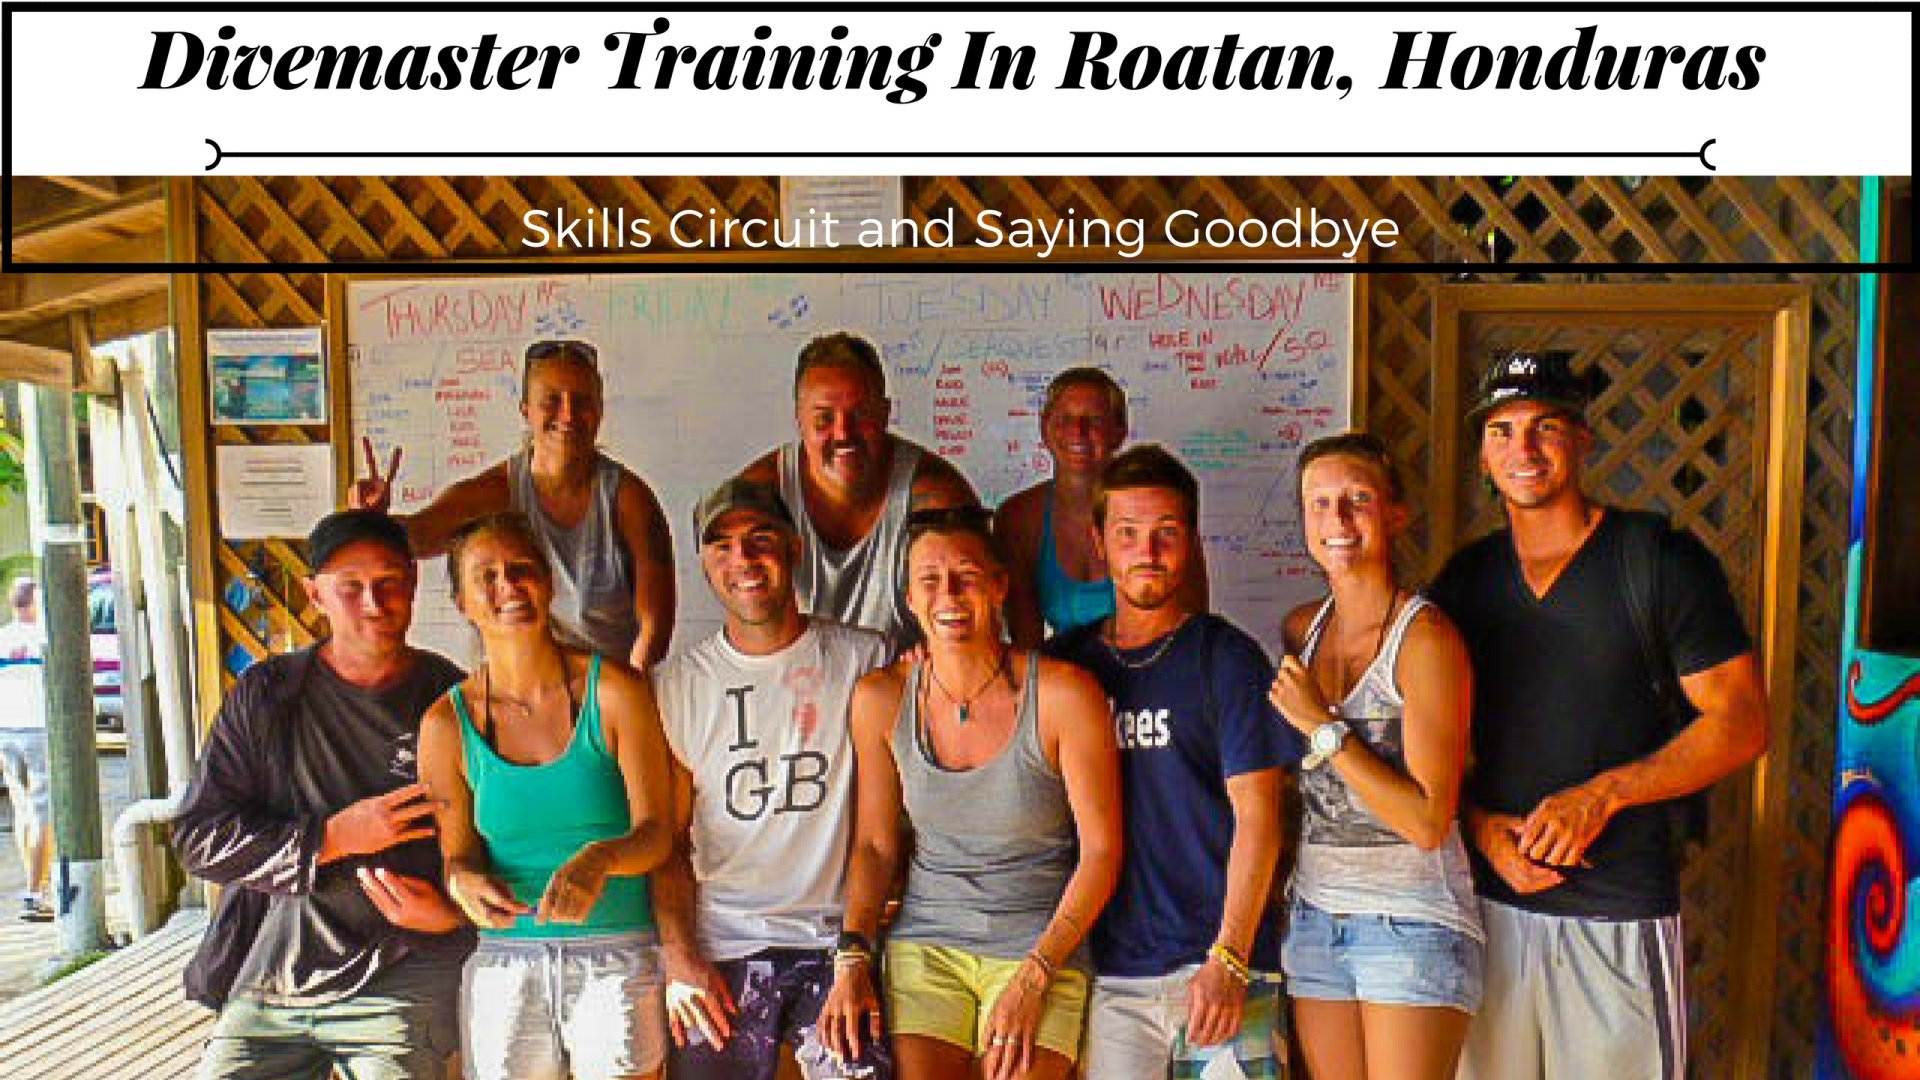 Divemaster Training In Roatan, Honduras - Skills Circuit and Saying Goodbye